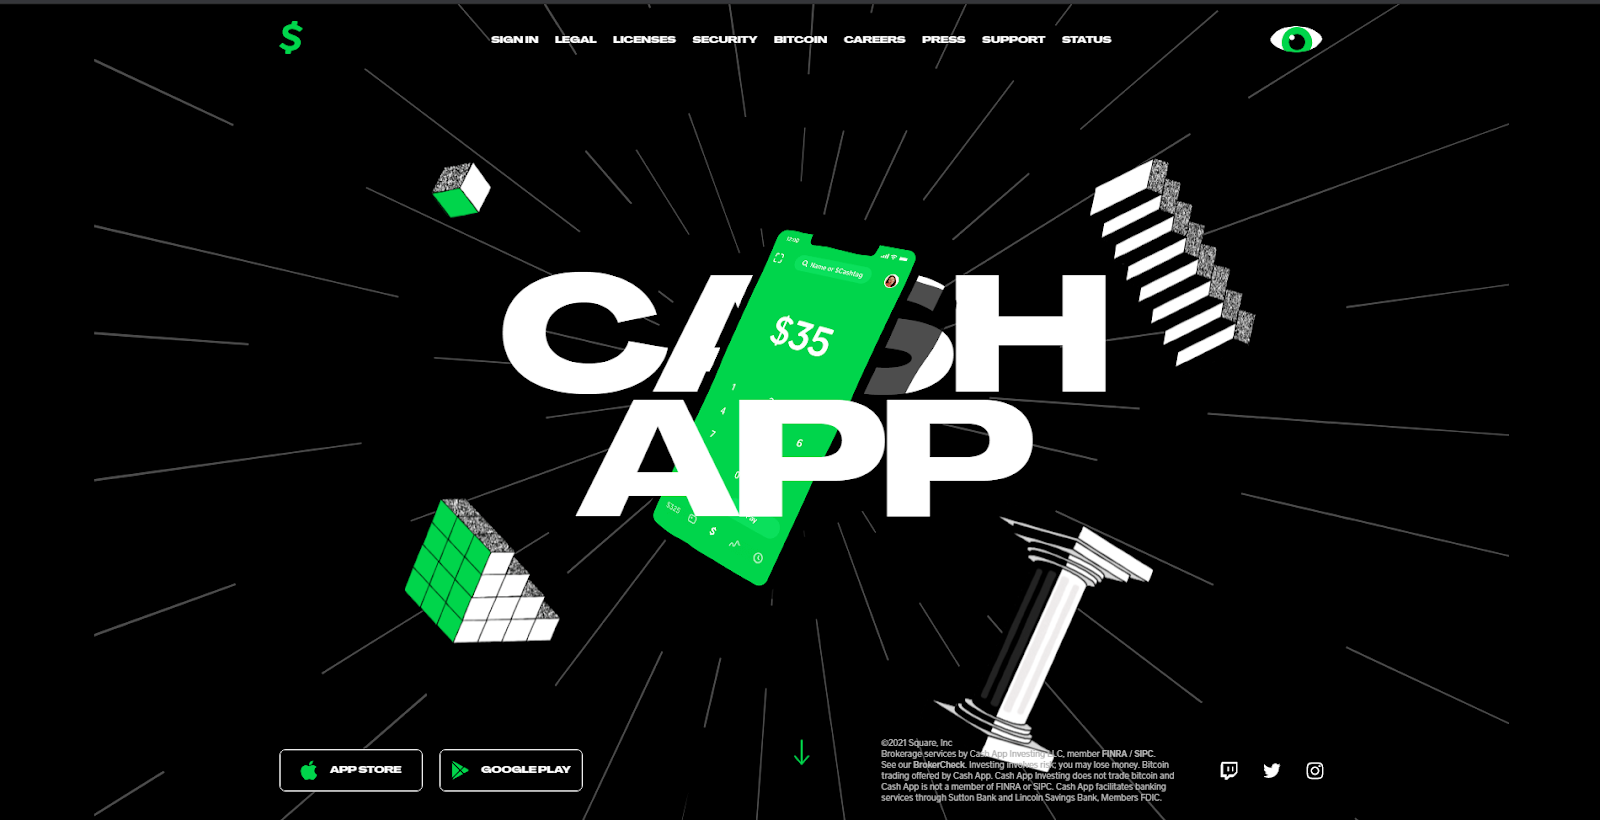 screenshot of Cash App website